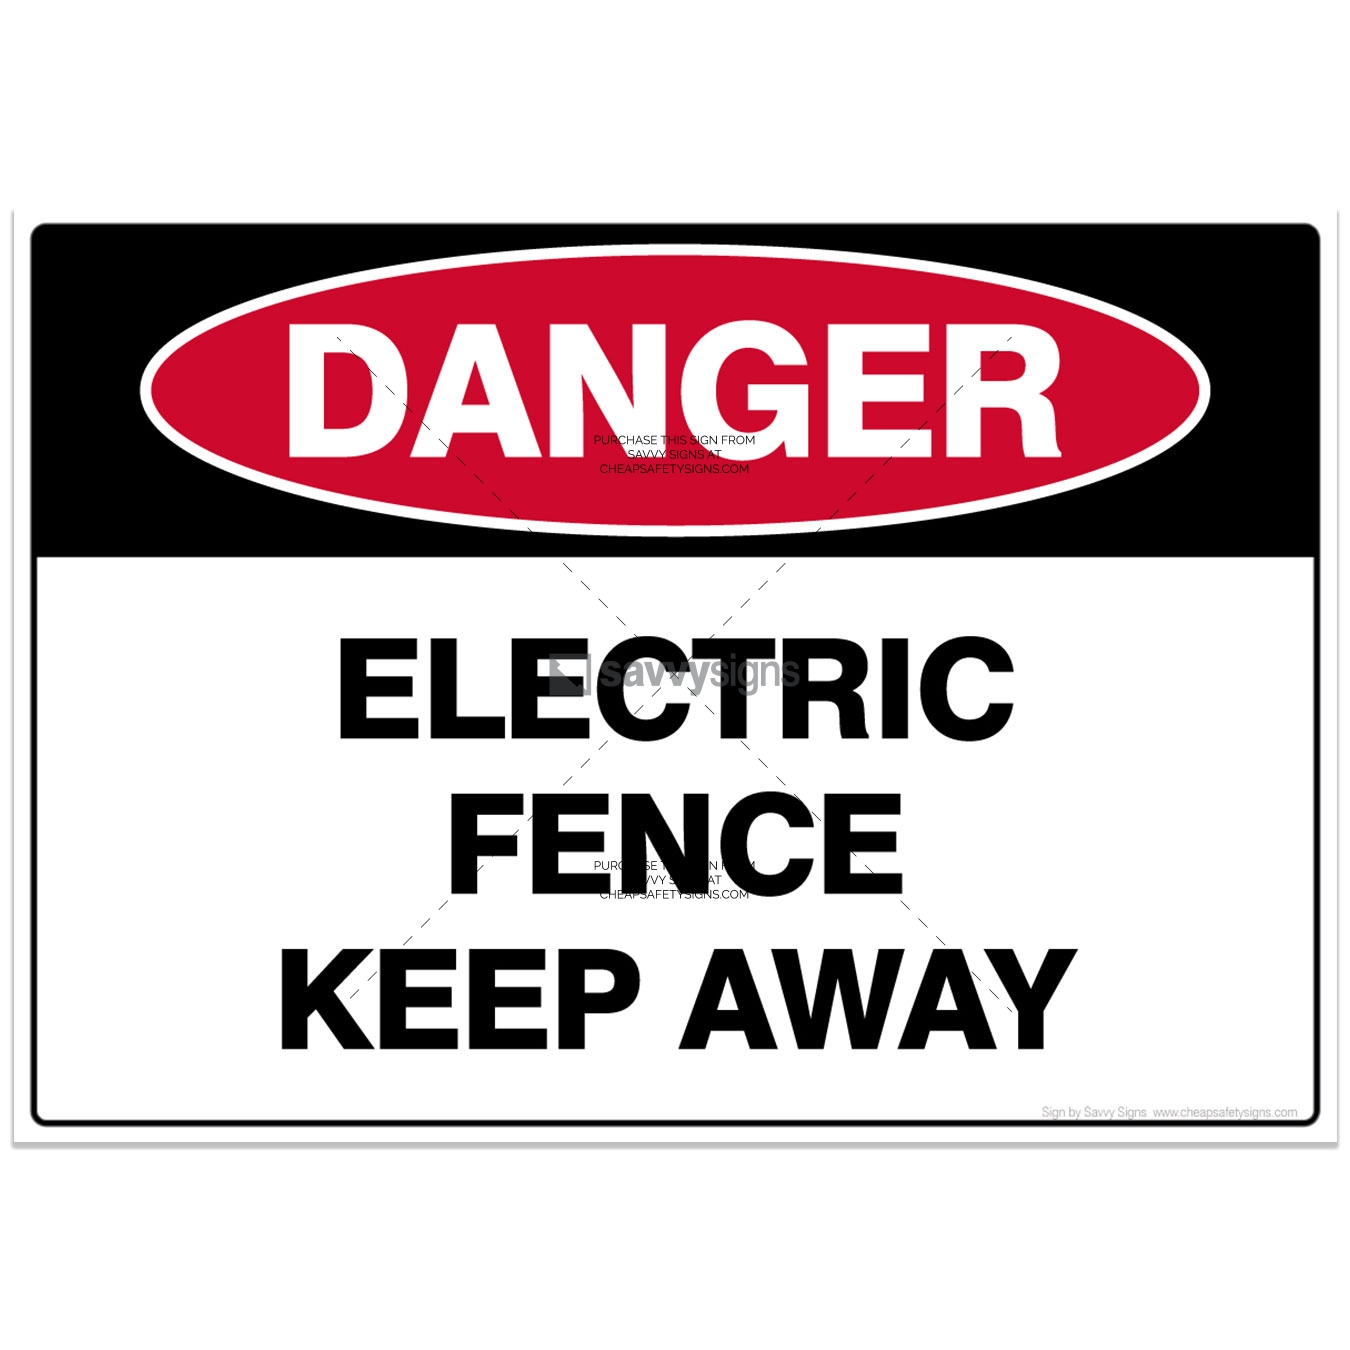 SSDAN3070-DANGER-Workplace-Safety-Signs_Savvy-Signs_v4.1